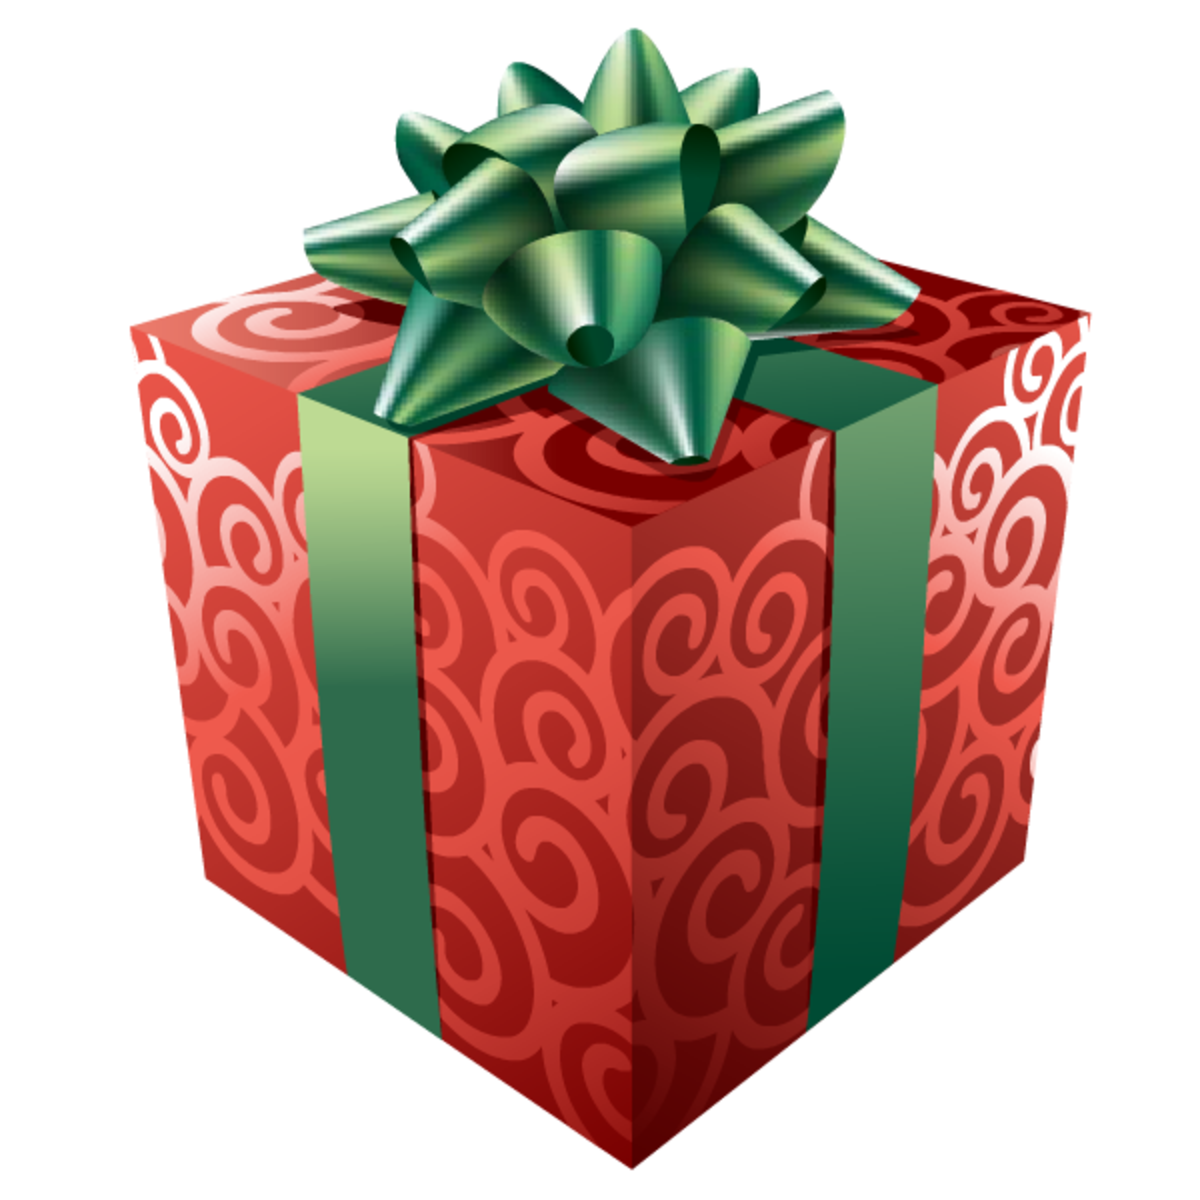 Red-and-green Christmas present clip art.